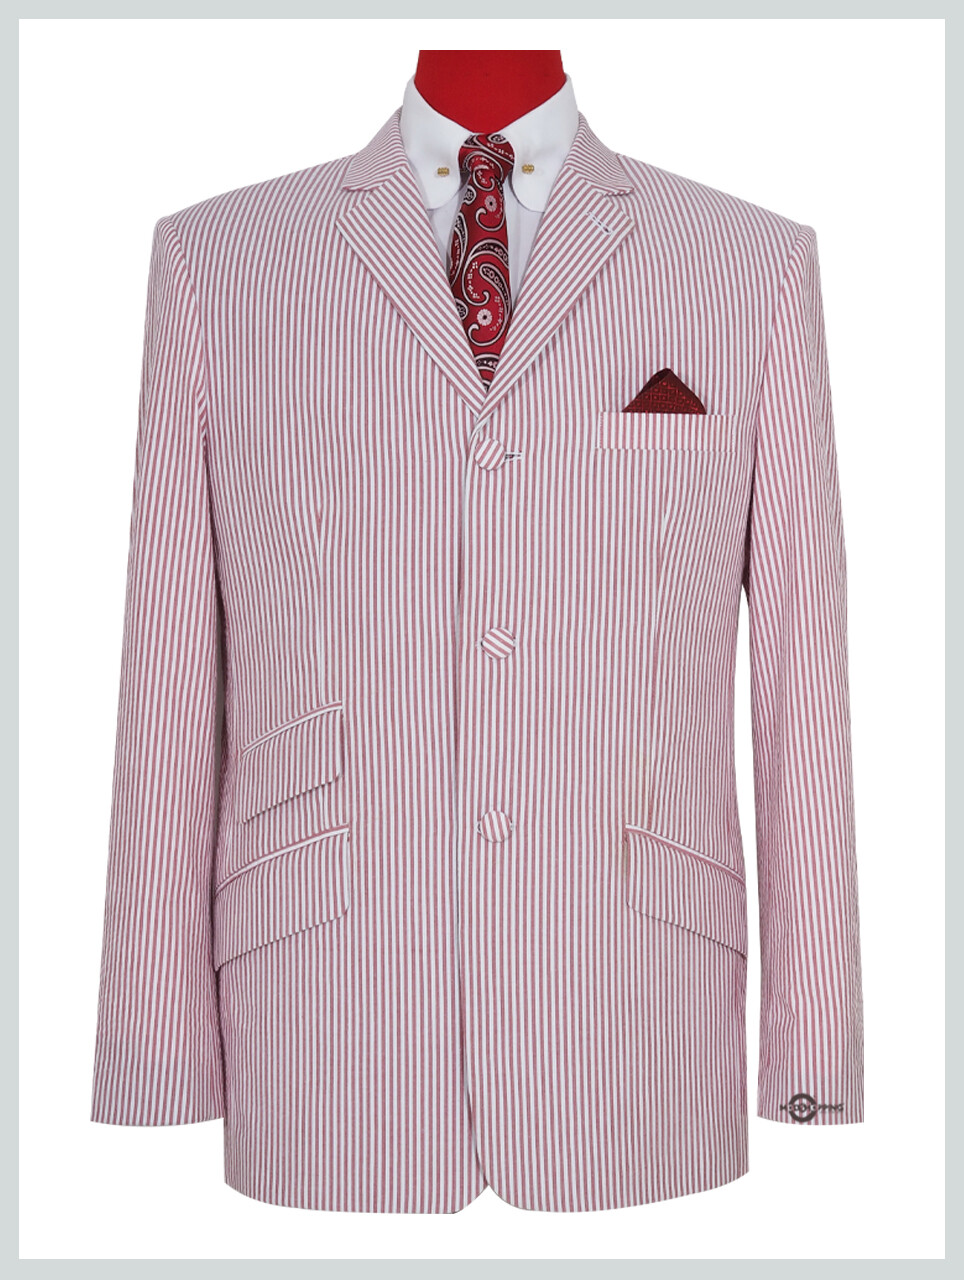 60s Mod Fashion Men Seersucker Pink Striped Jacket.